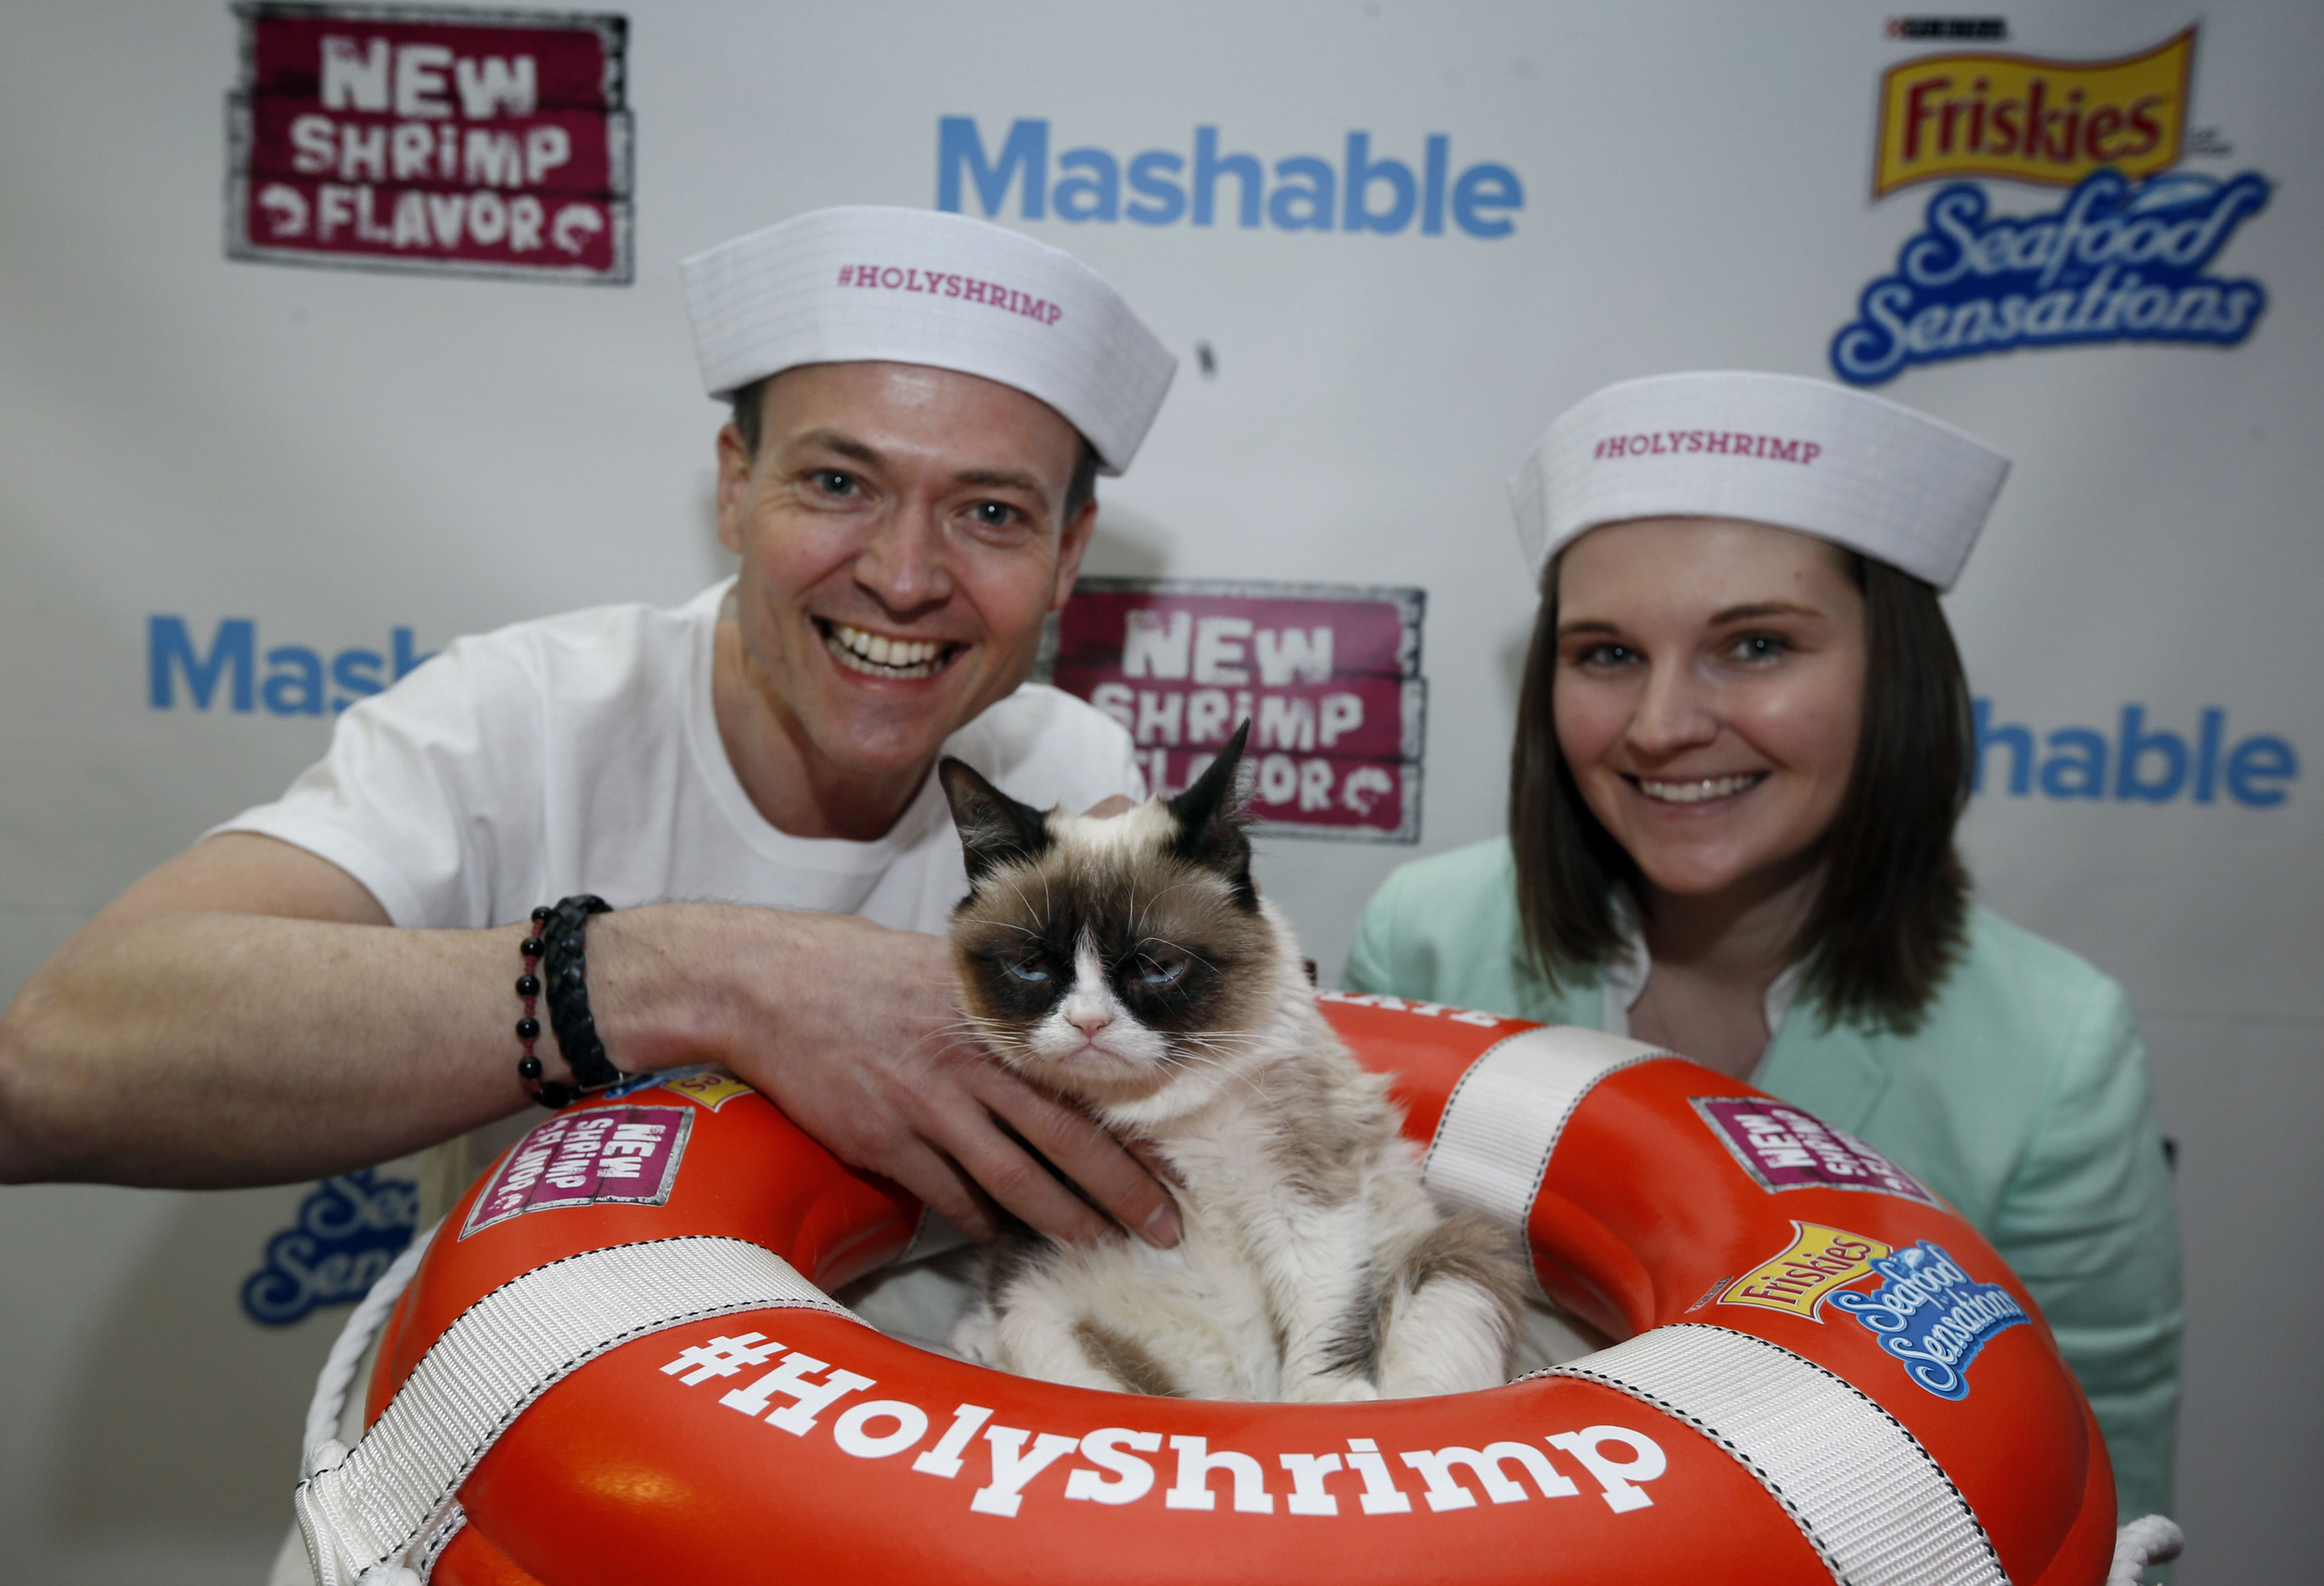 """Friskies' """"Official Spokescat,"""" Grumpy Cat, takes time to frown with fans at her sea-faring photo booth at the Mashable House on Friday, March 7, 2014. Friskies donated 25,000 meals of Friskies Seafood Sensations with NEW shrimp flavor to Friends of Austin Animal Center, and fans can help increase the donation up to 50,000 meals by posting a photo of Grumpy Cat or their own cat in social media using the hashtag #HolyShrimp between March 7-9. (Erich Schlegel/AP Images for Friskies)"""